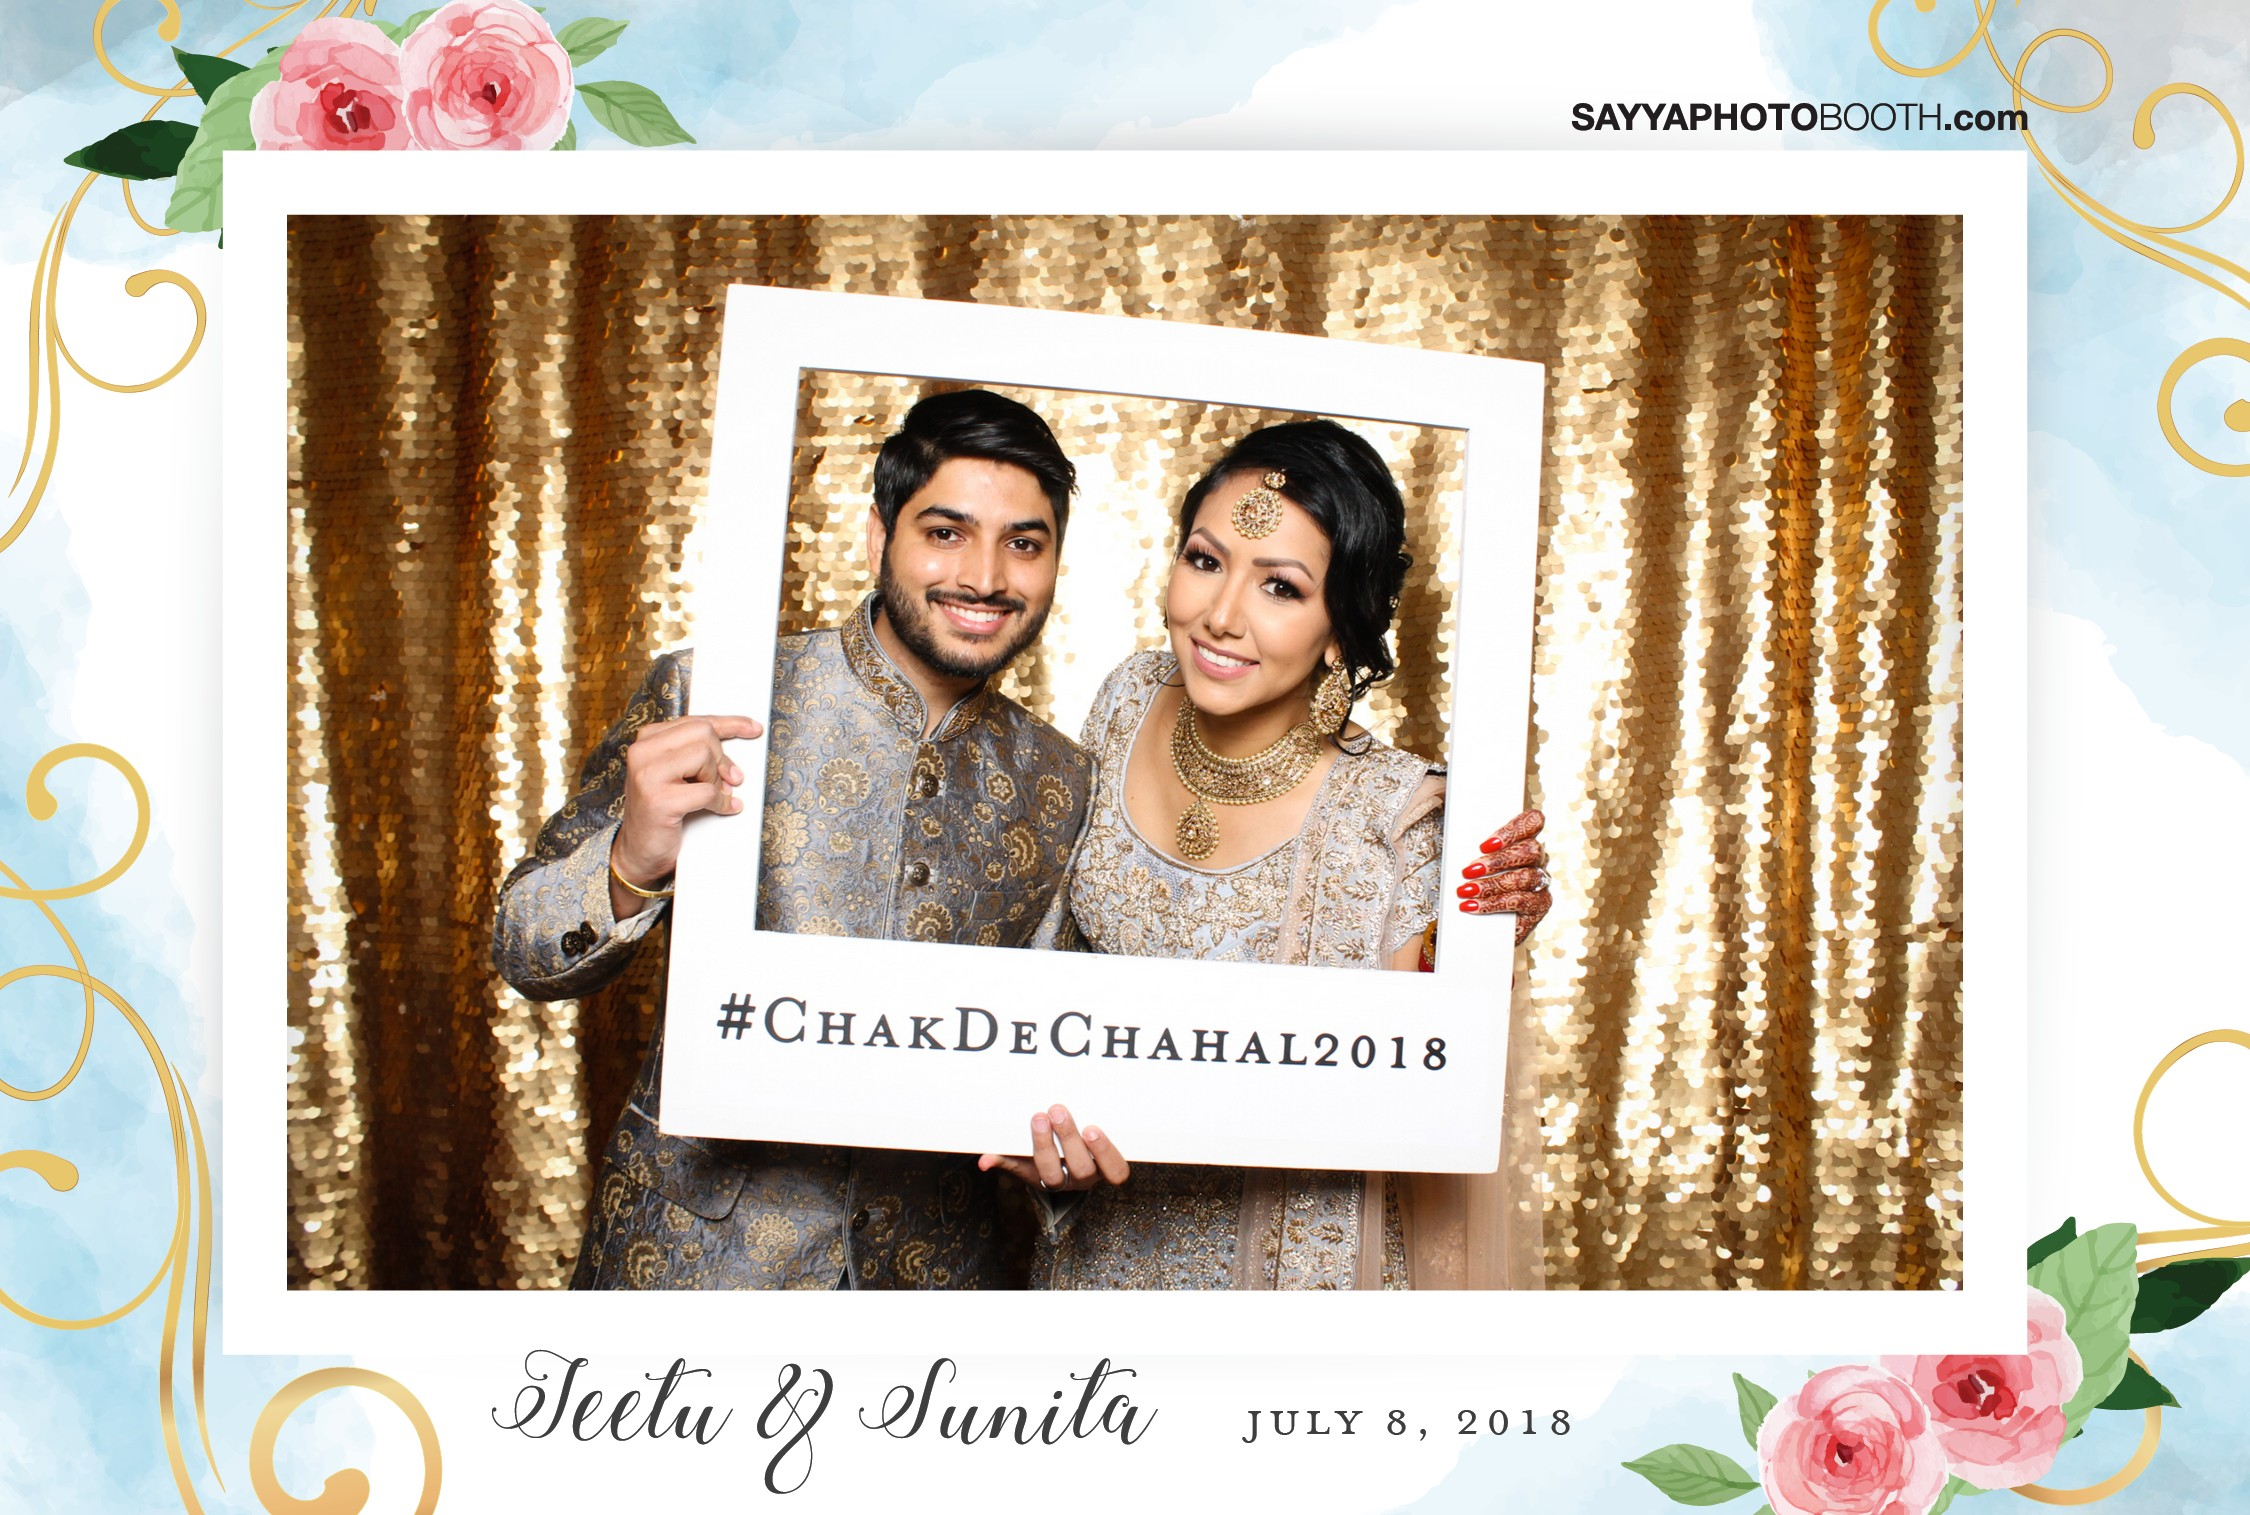 Sunita and Jay's Weddding